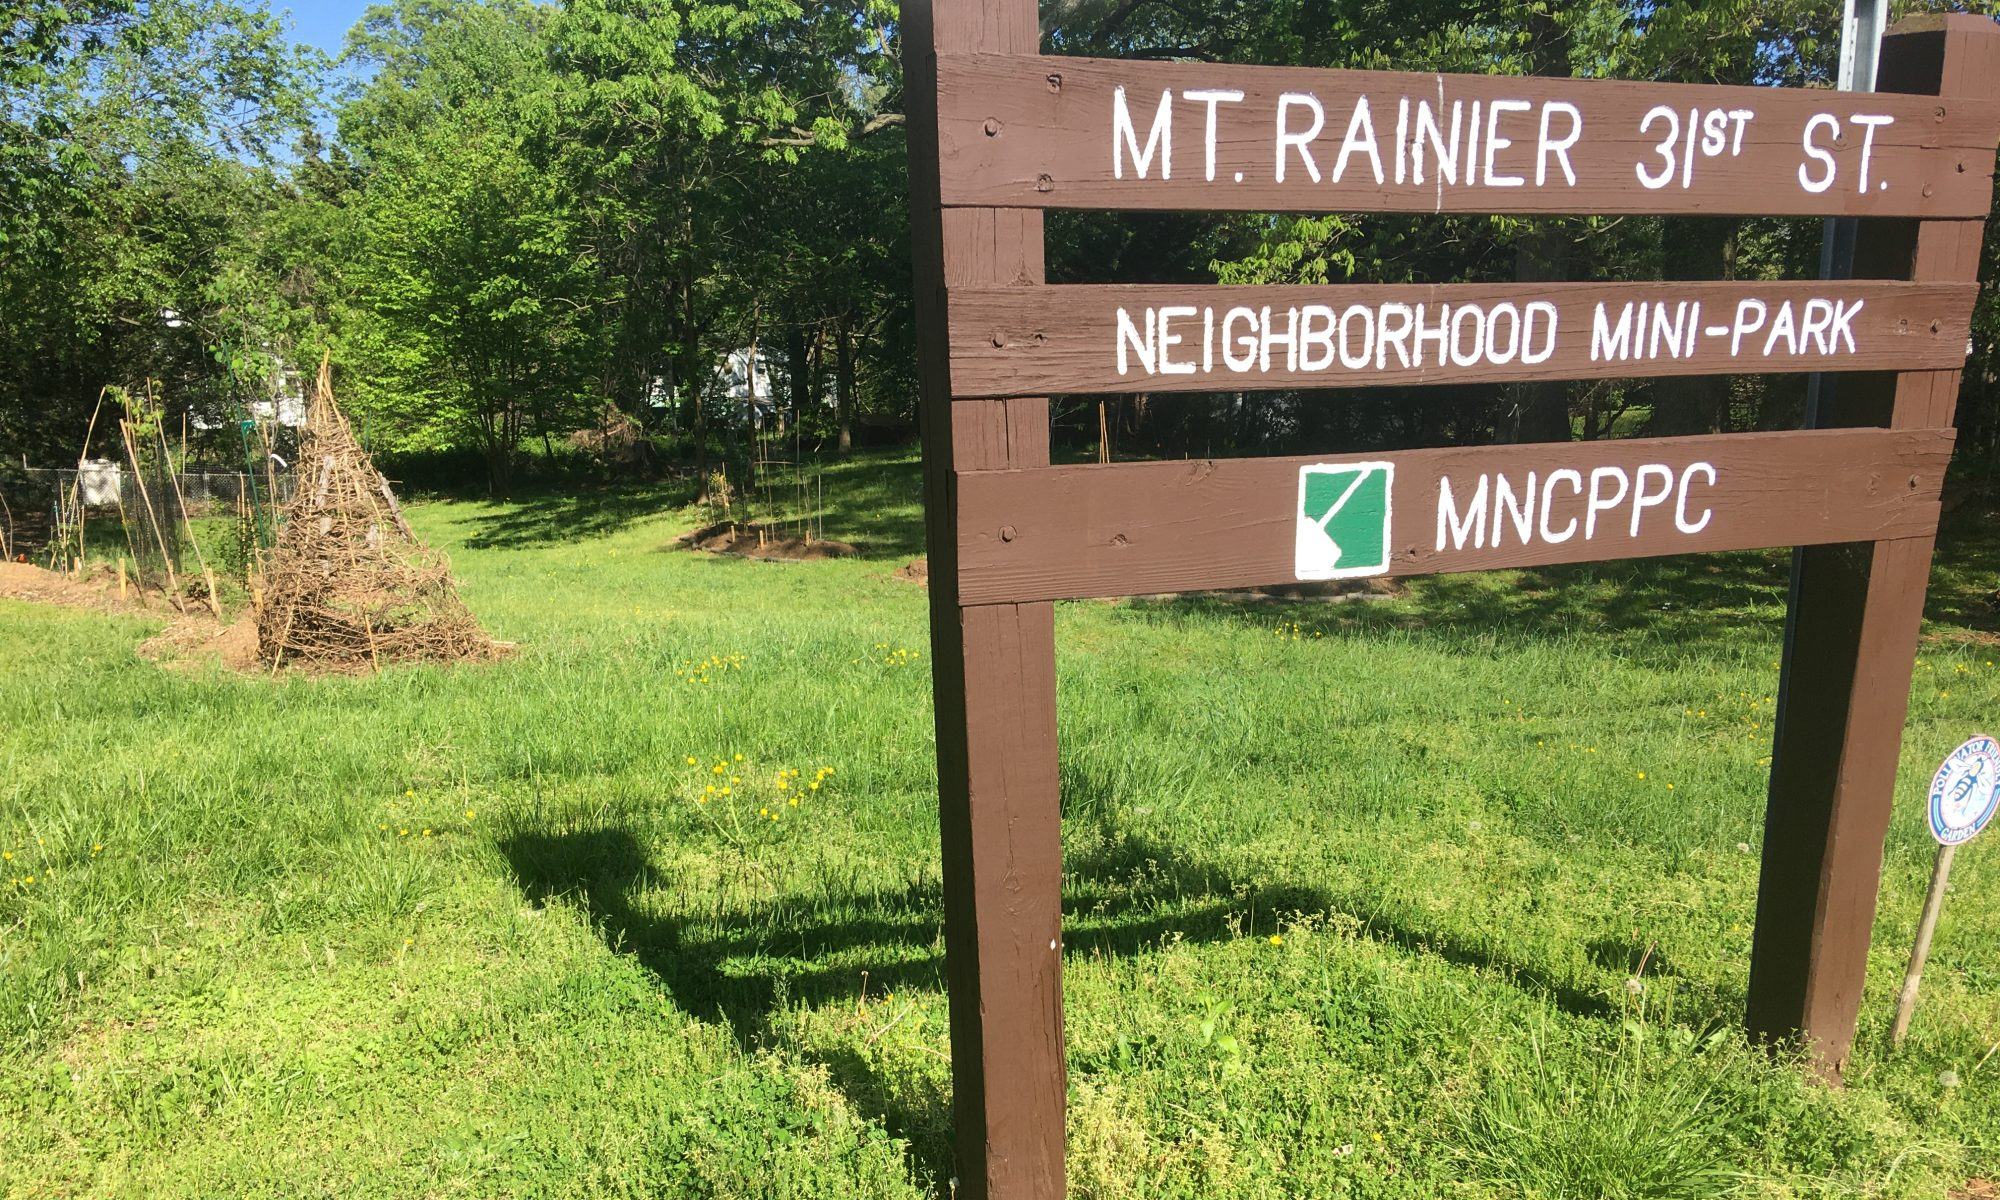 Mount Rainier, Maryland Community Food Forest